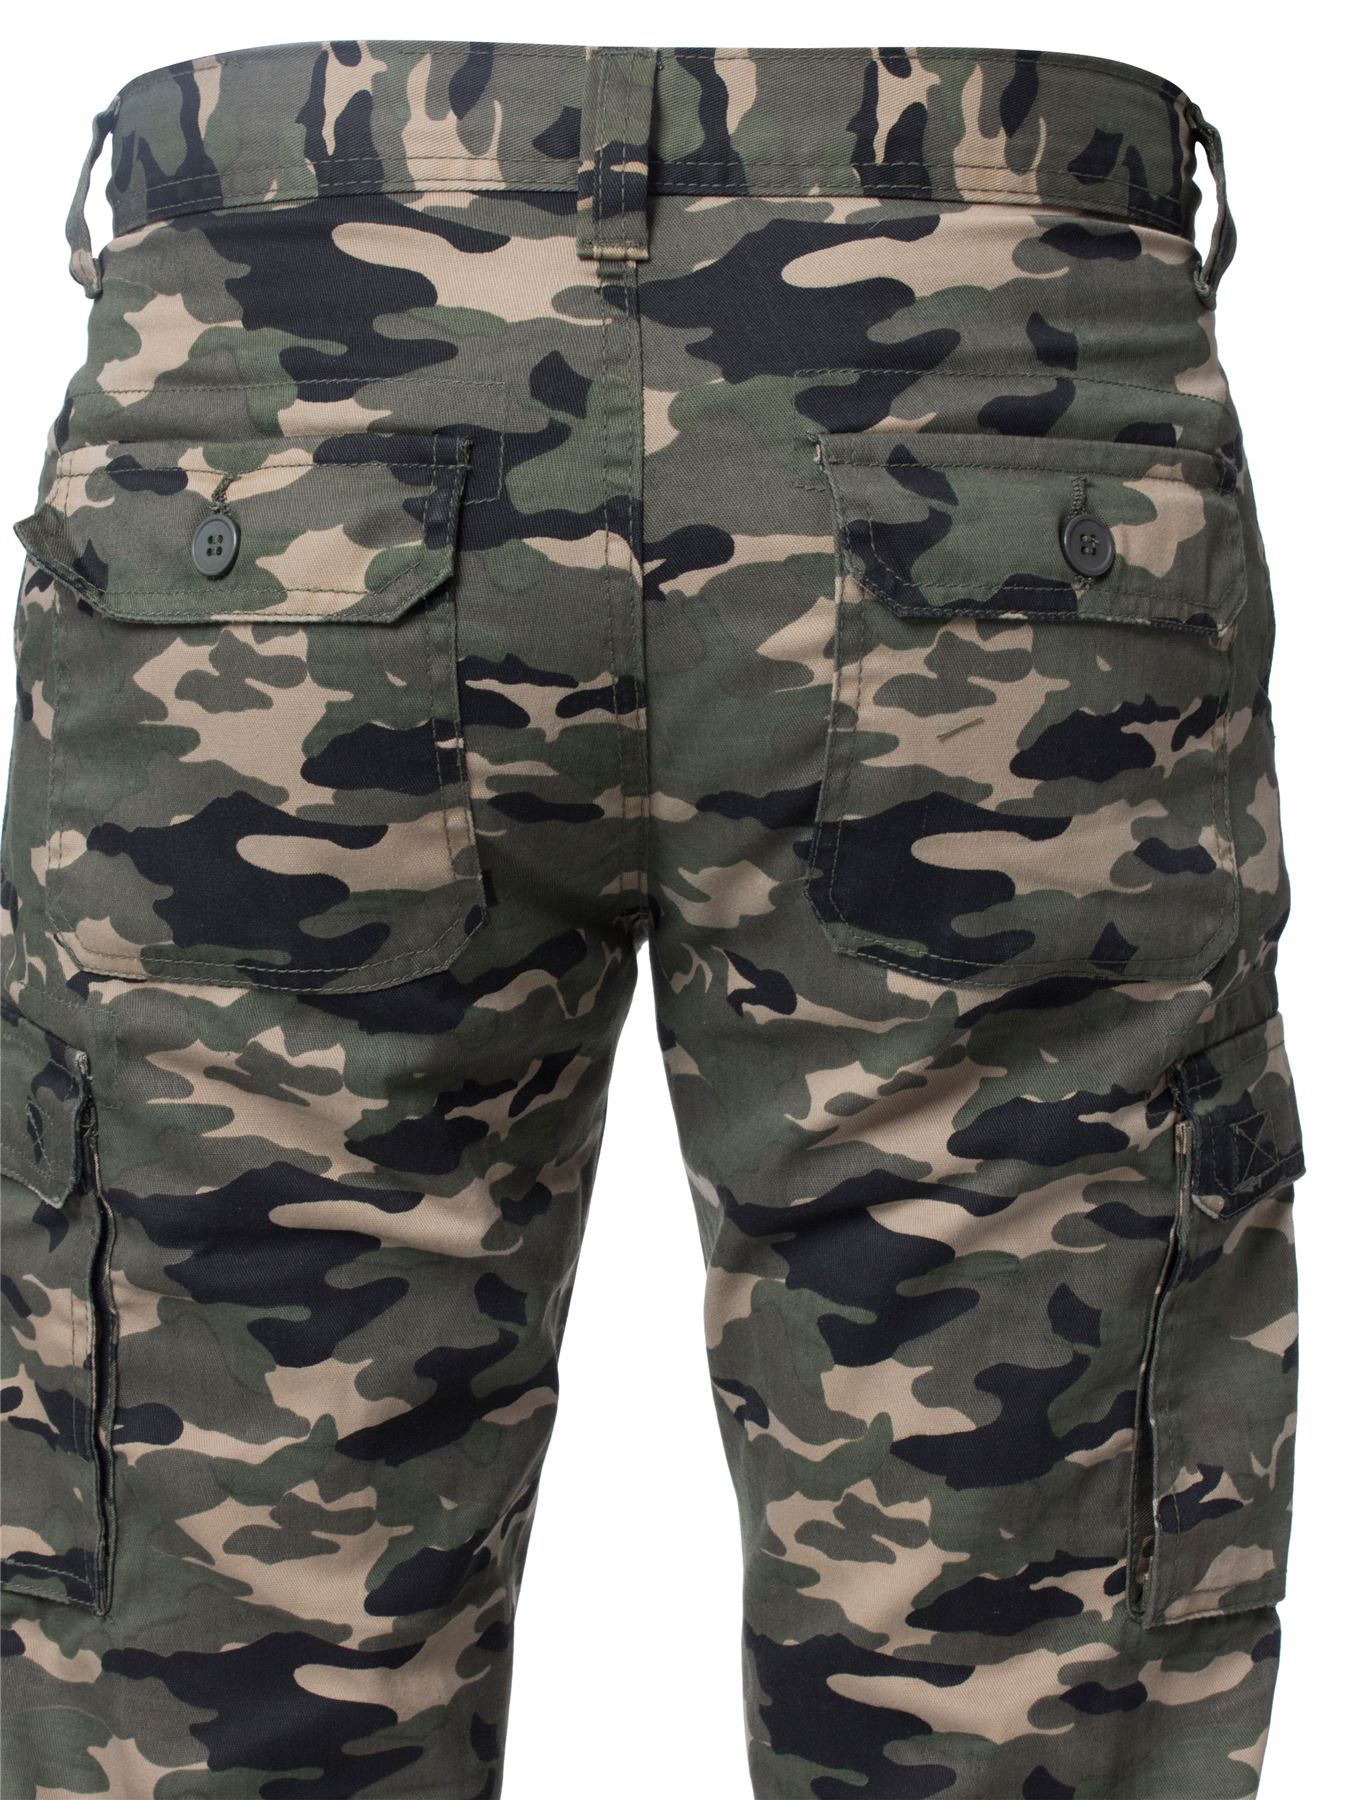 Kruze-Mens-Military-Combat-Trousers-Camouflage-Cargo-Camo-Army-Casual-Work-Pants miniatura 21